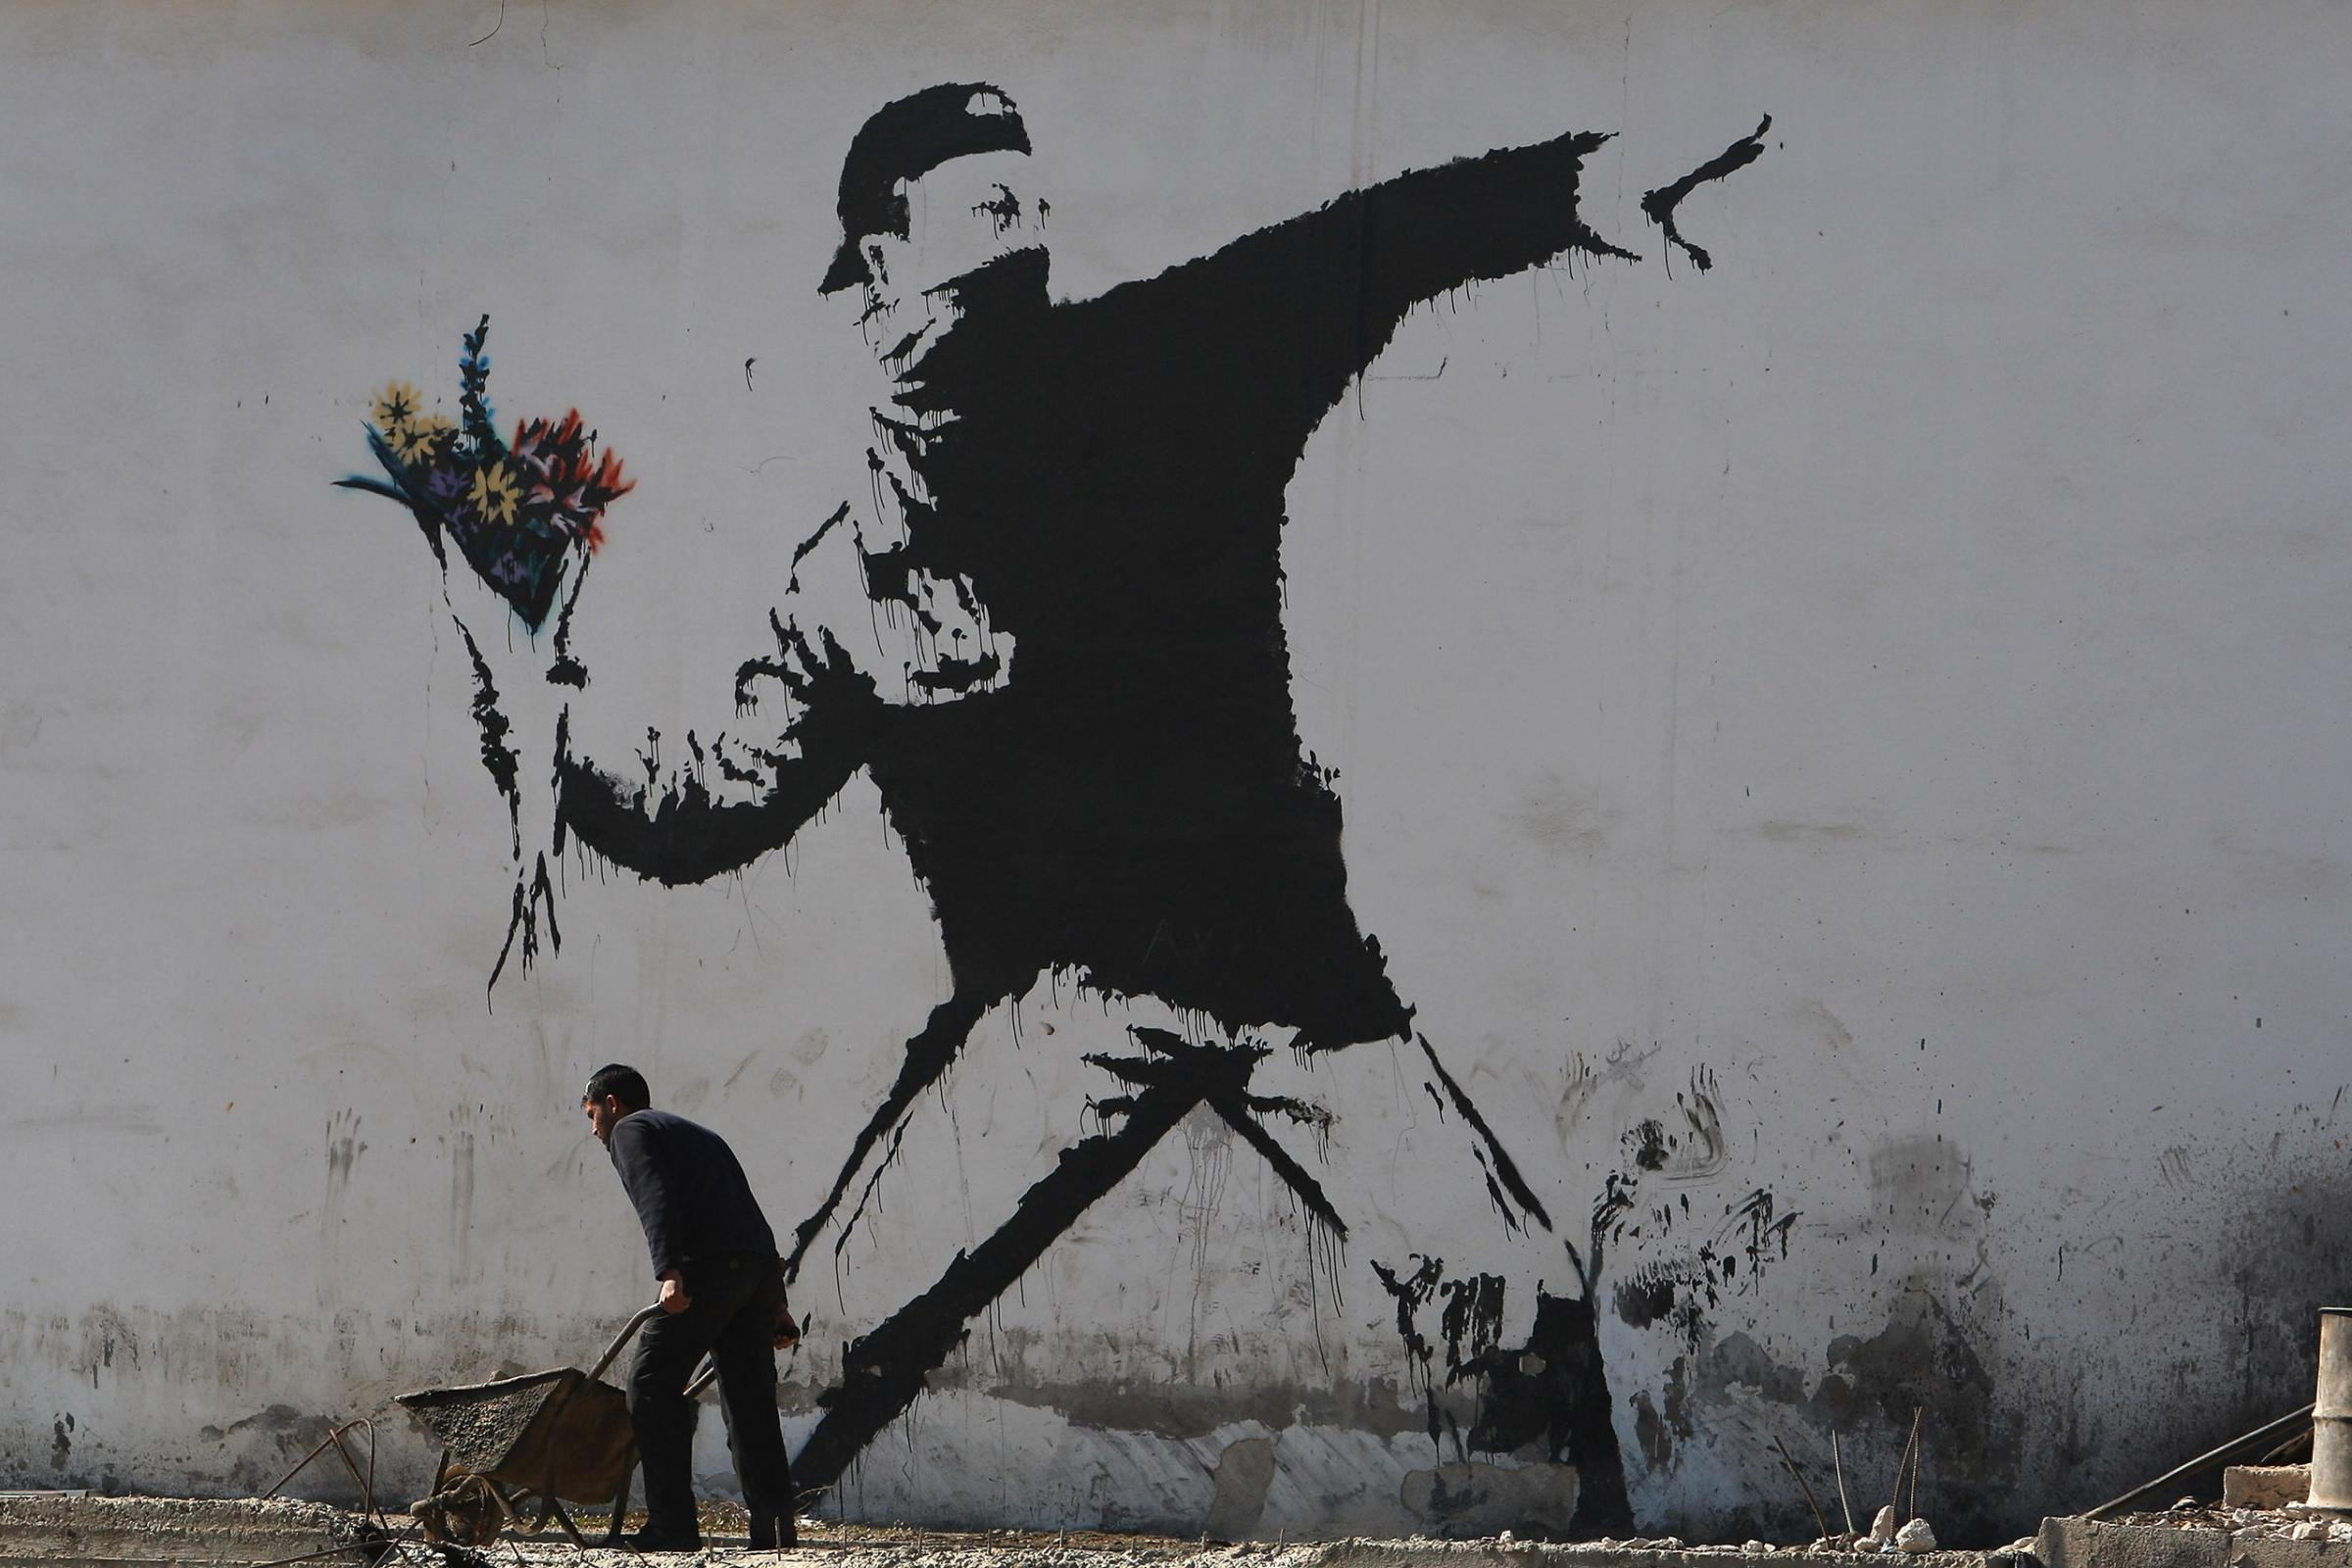 BETHLEHEM, WEST BANK - DECEMBER 05:  A Palestinian labourer works under a large wall painting by elusive British graffiti artist Banksy December 5, 2007 on a building wall in the biblical city of Bethlehem in the West Bank. The Bristol-born artist has ado